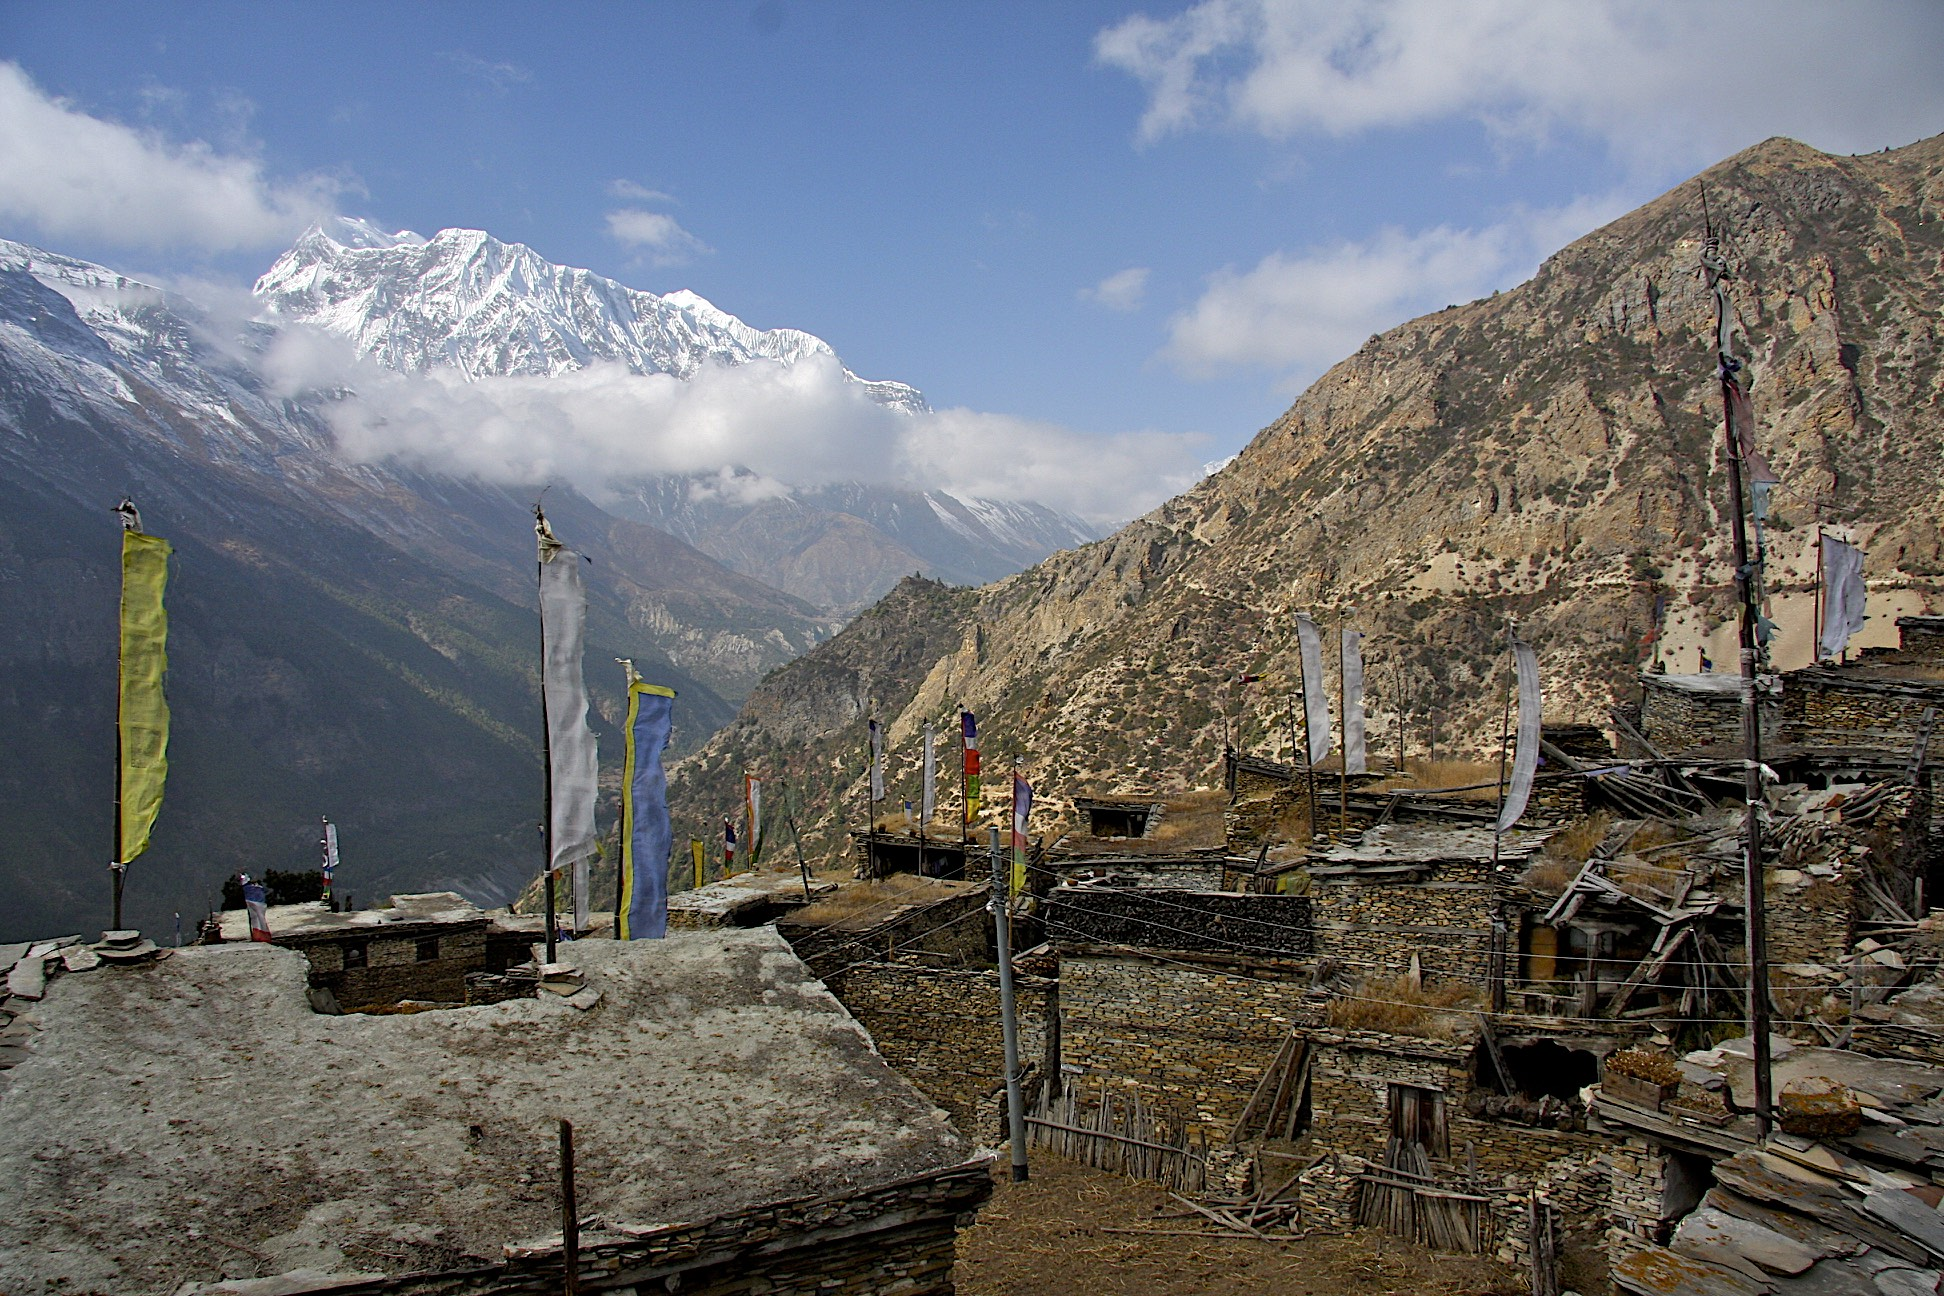 Annapurna II in the distance